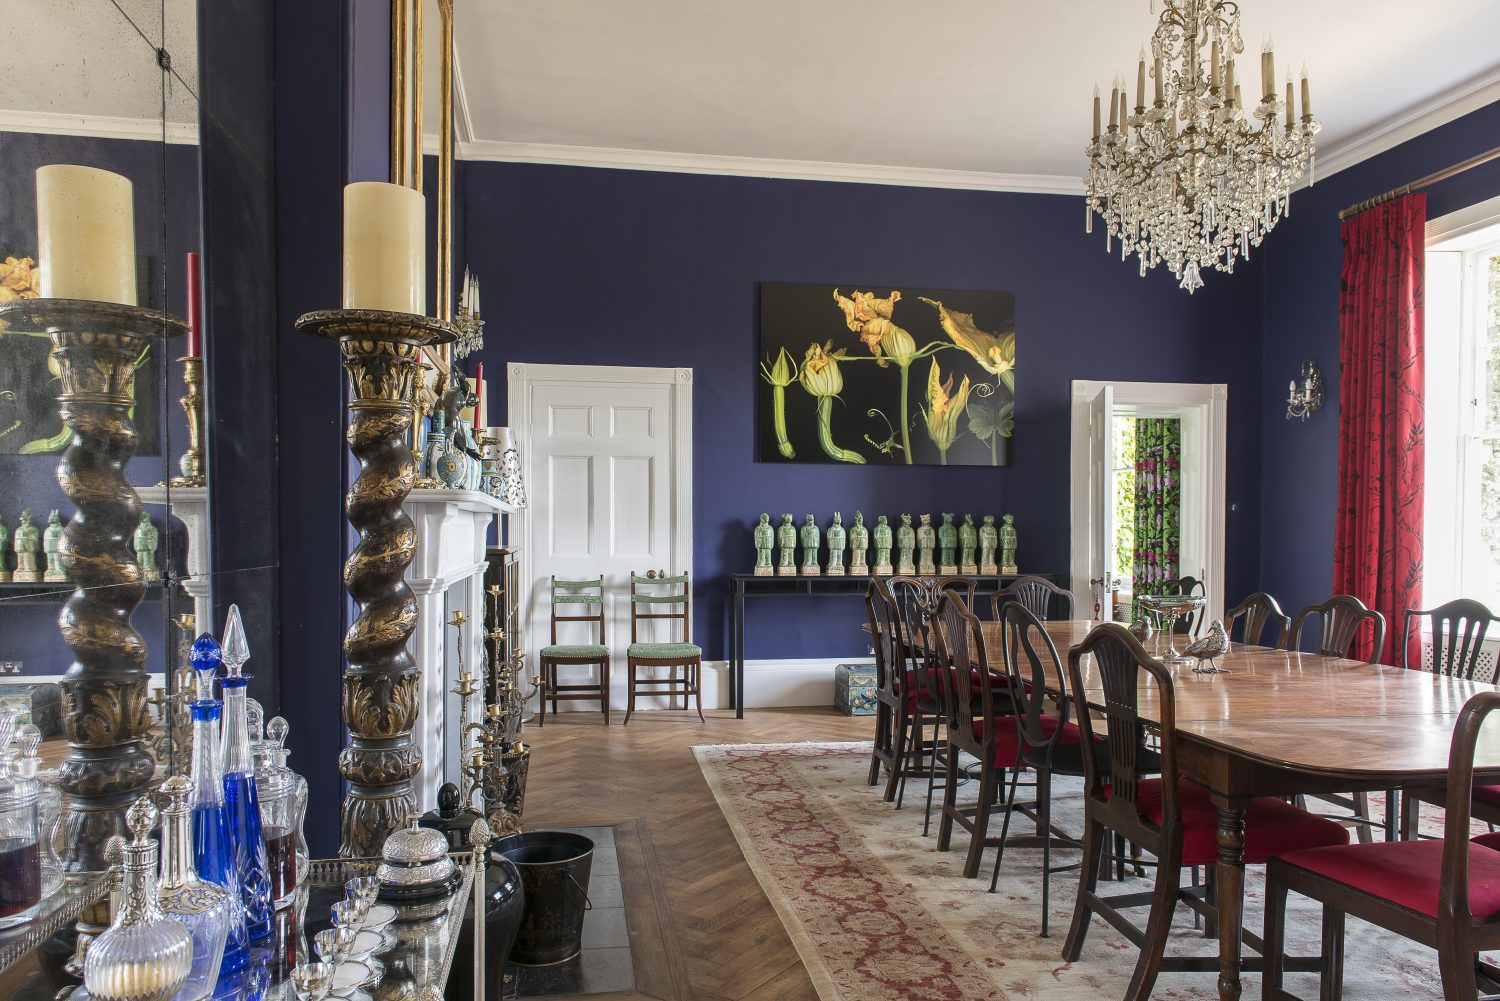 The dining room is painted in Thai Sapphire by Little Greene. The cast iron dining chairs are from Oka. The botanical photograph is by Isabel Bannerman